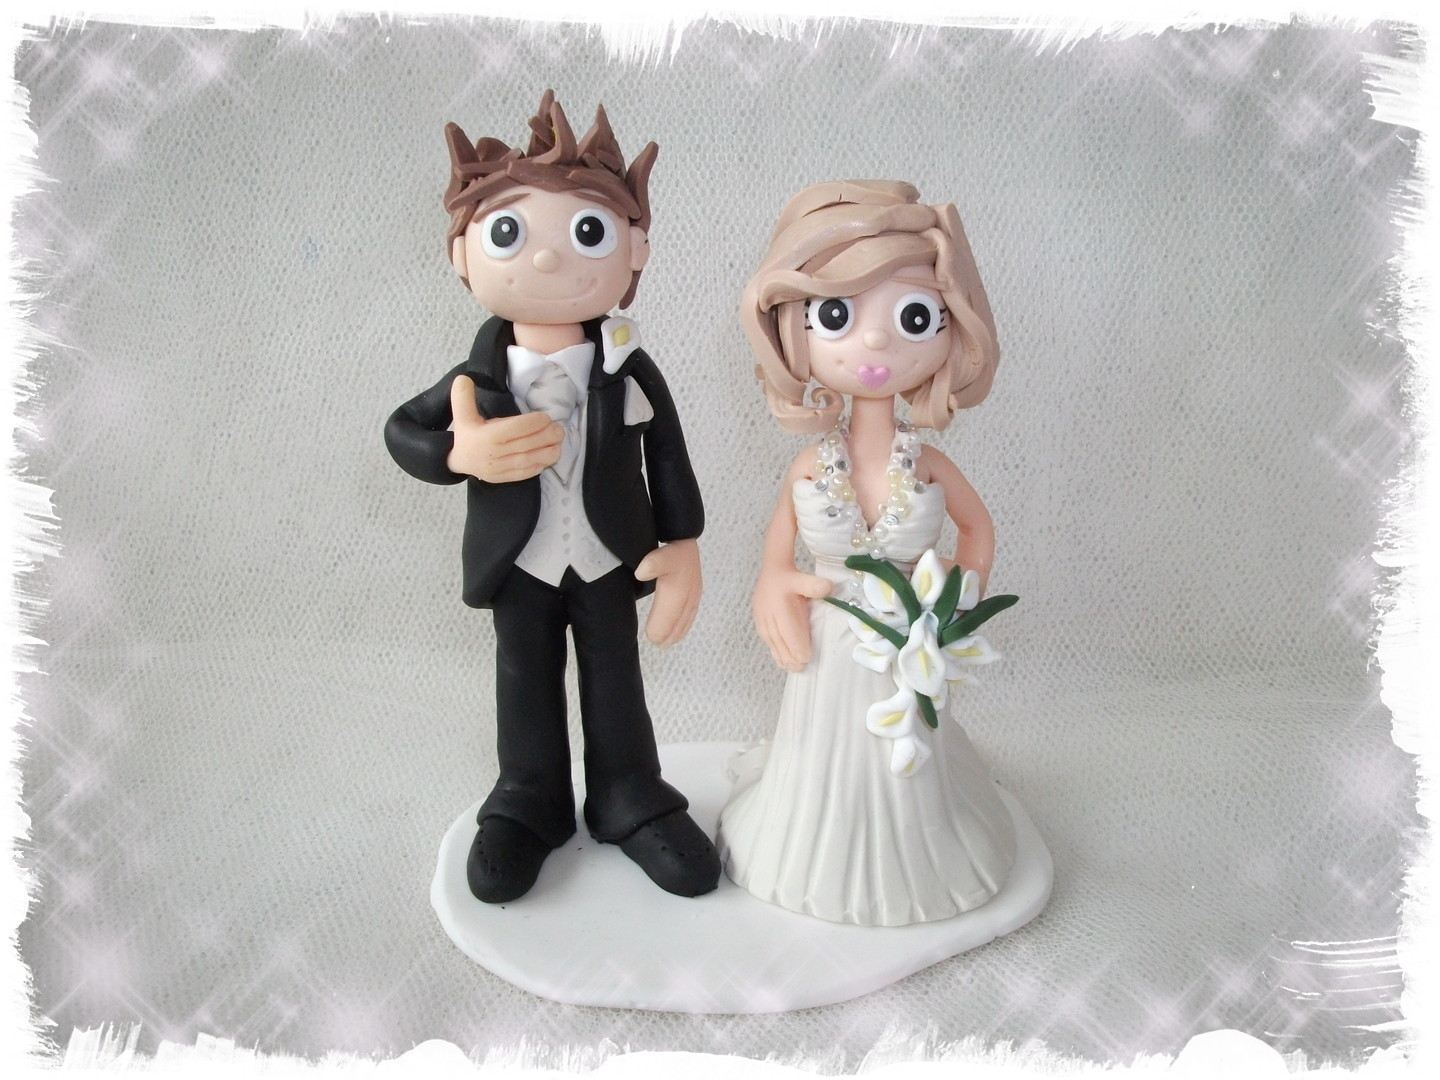 Cake Toppers Cake : Wedding Cakes Pictures: UK Cake Toppers Wedding Pictures Ideas